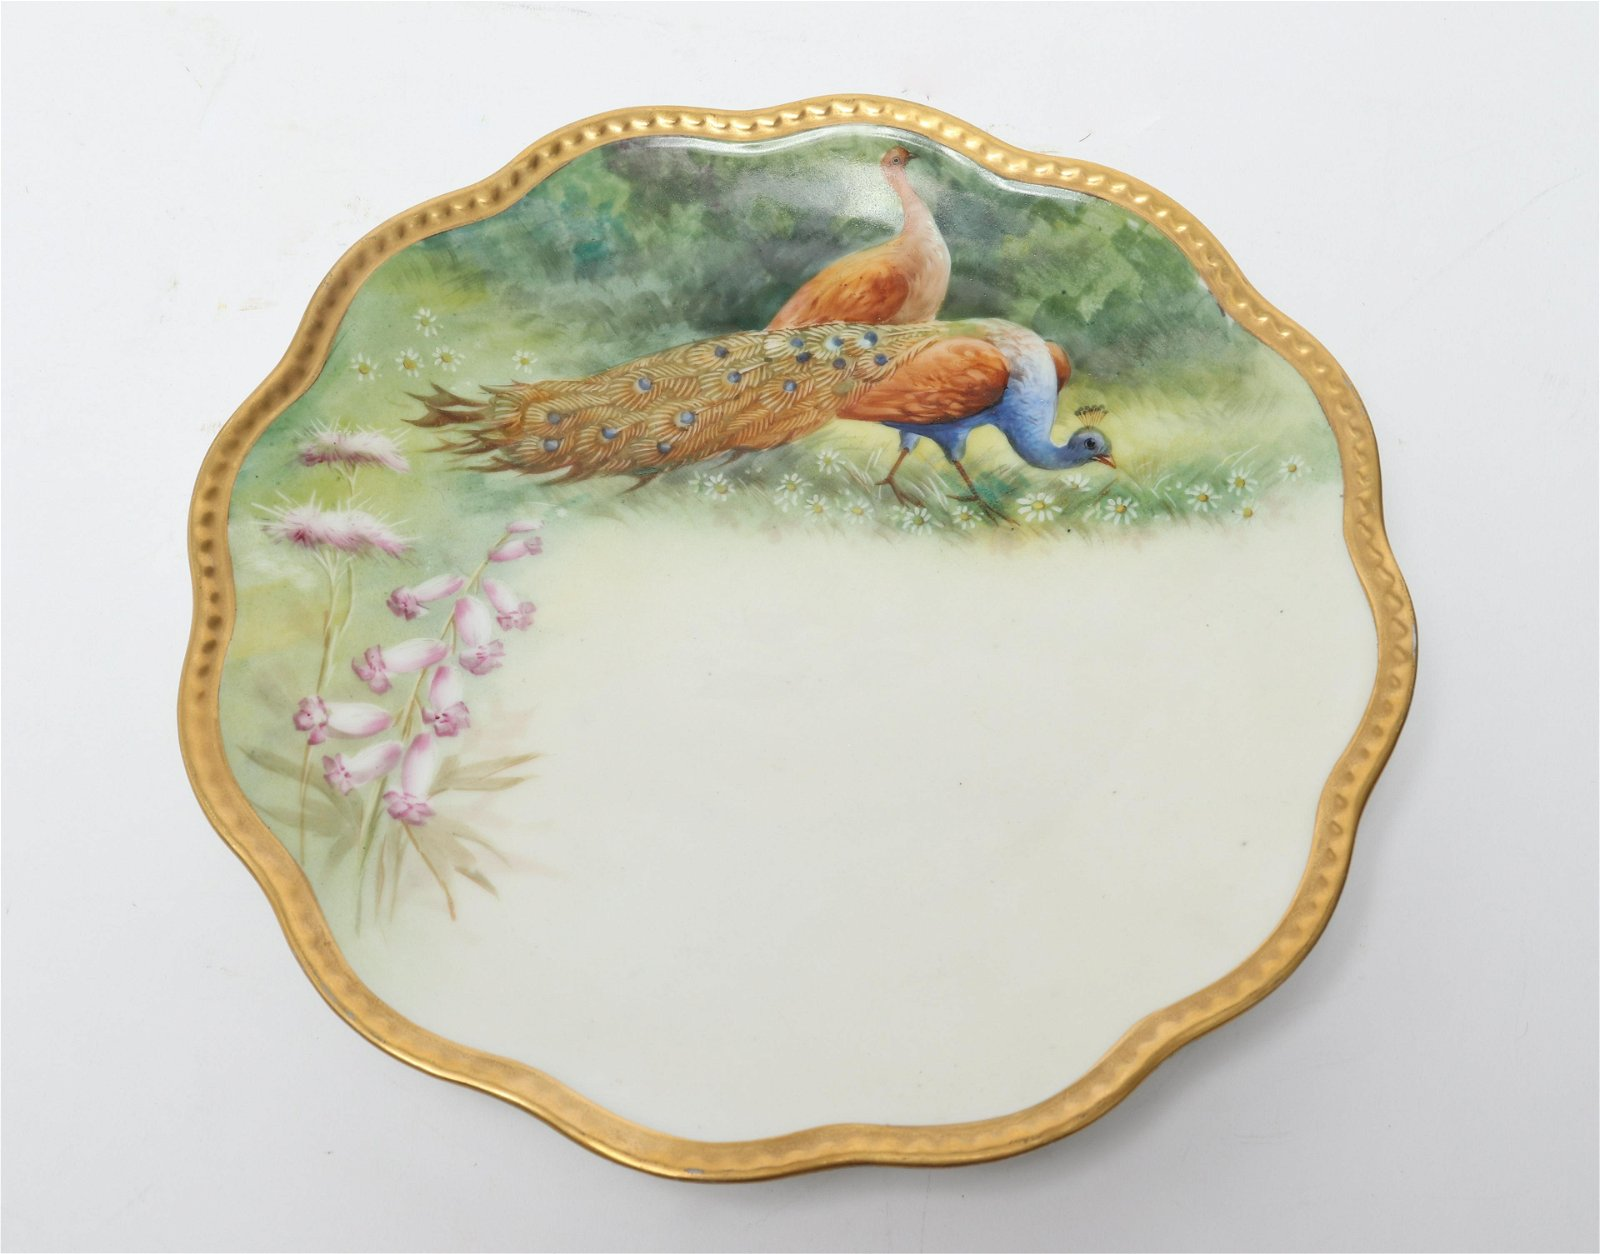 Limoges France Hand-Painted Plate with Peacock